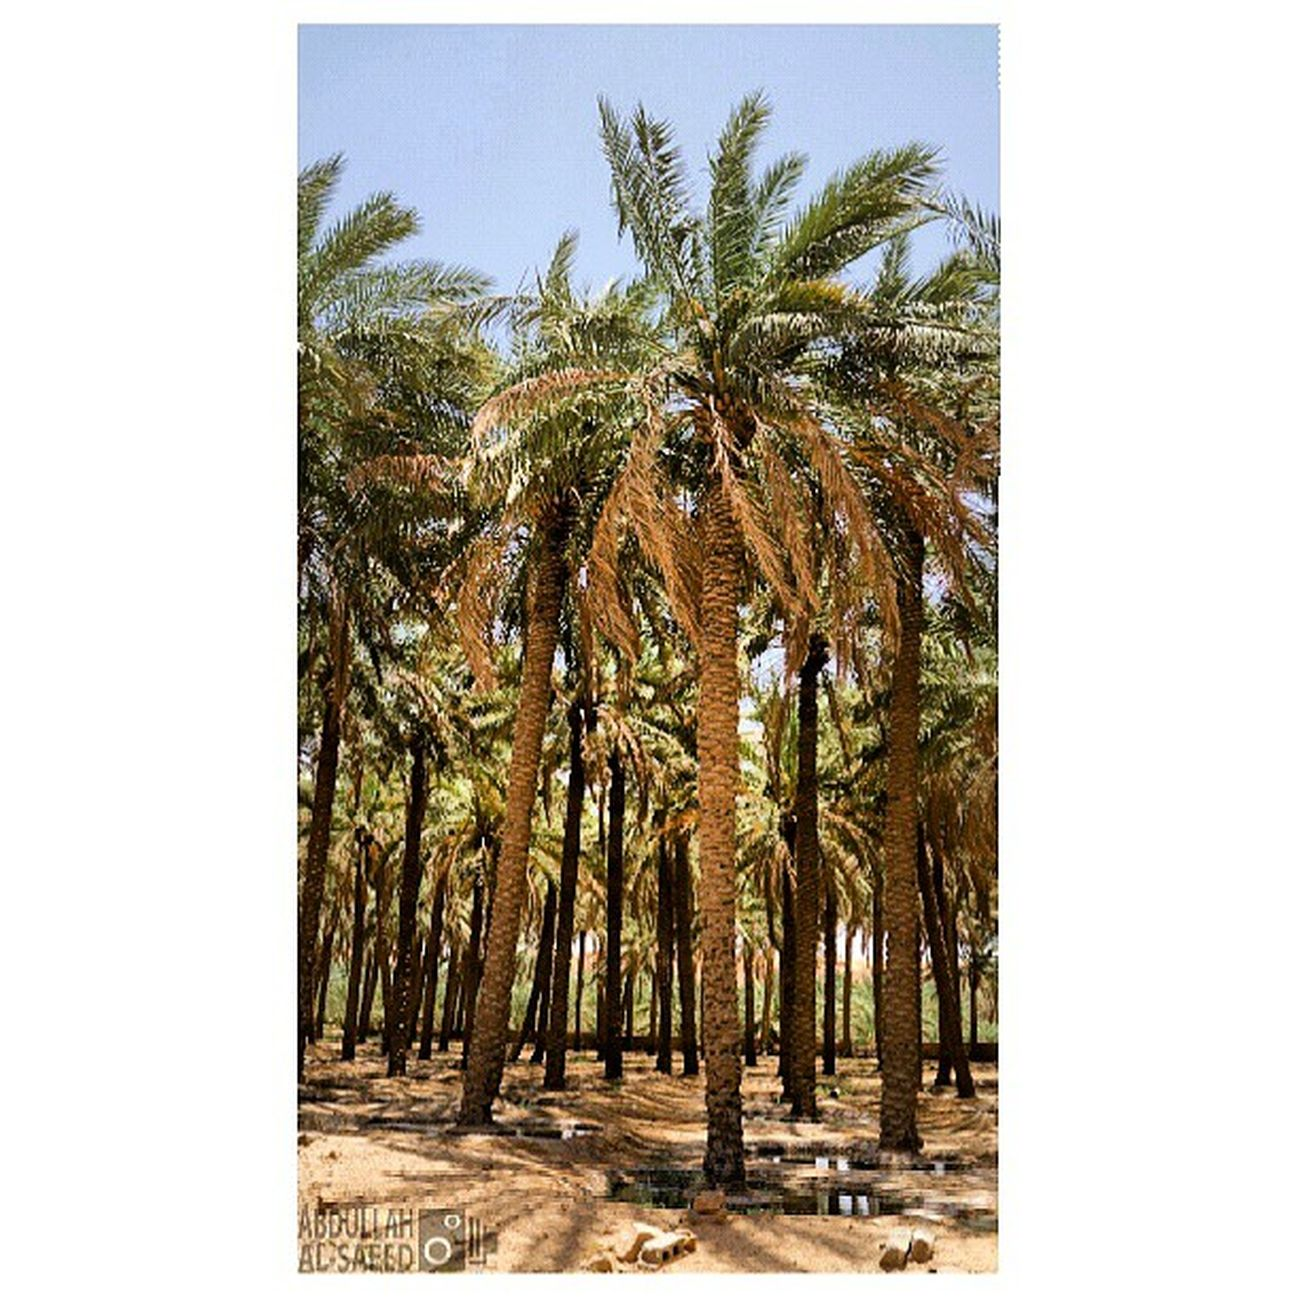 مزرعة الربيعية القصيم السعودية  تراث قديم old ksa Saudi nature beautiful landscapes photography photo photos TagsForLikes picture photography سوني sony sonya57 green